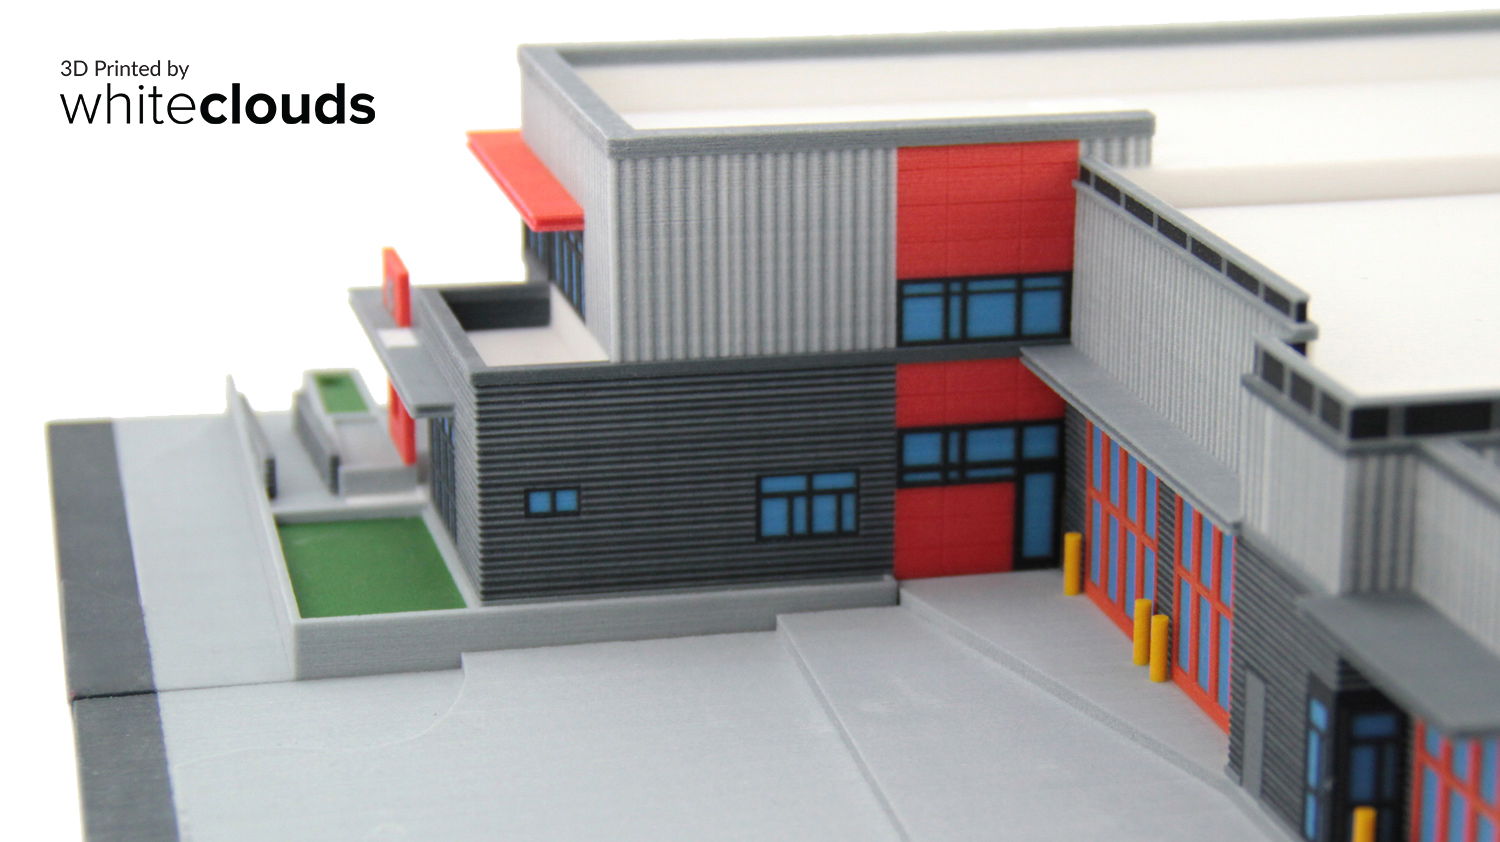 3D-Printed-WhiteClouds-Fire-Station-Architectural-Fire-Station-3.jpg